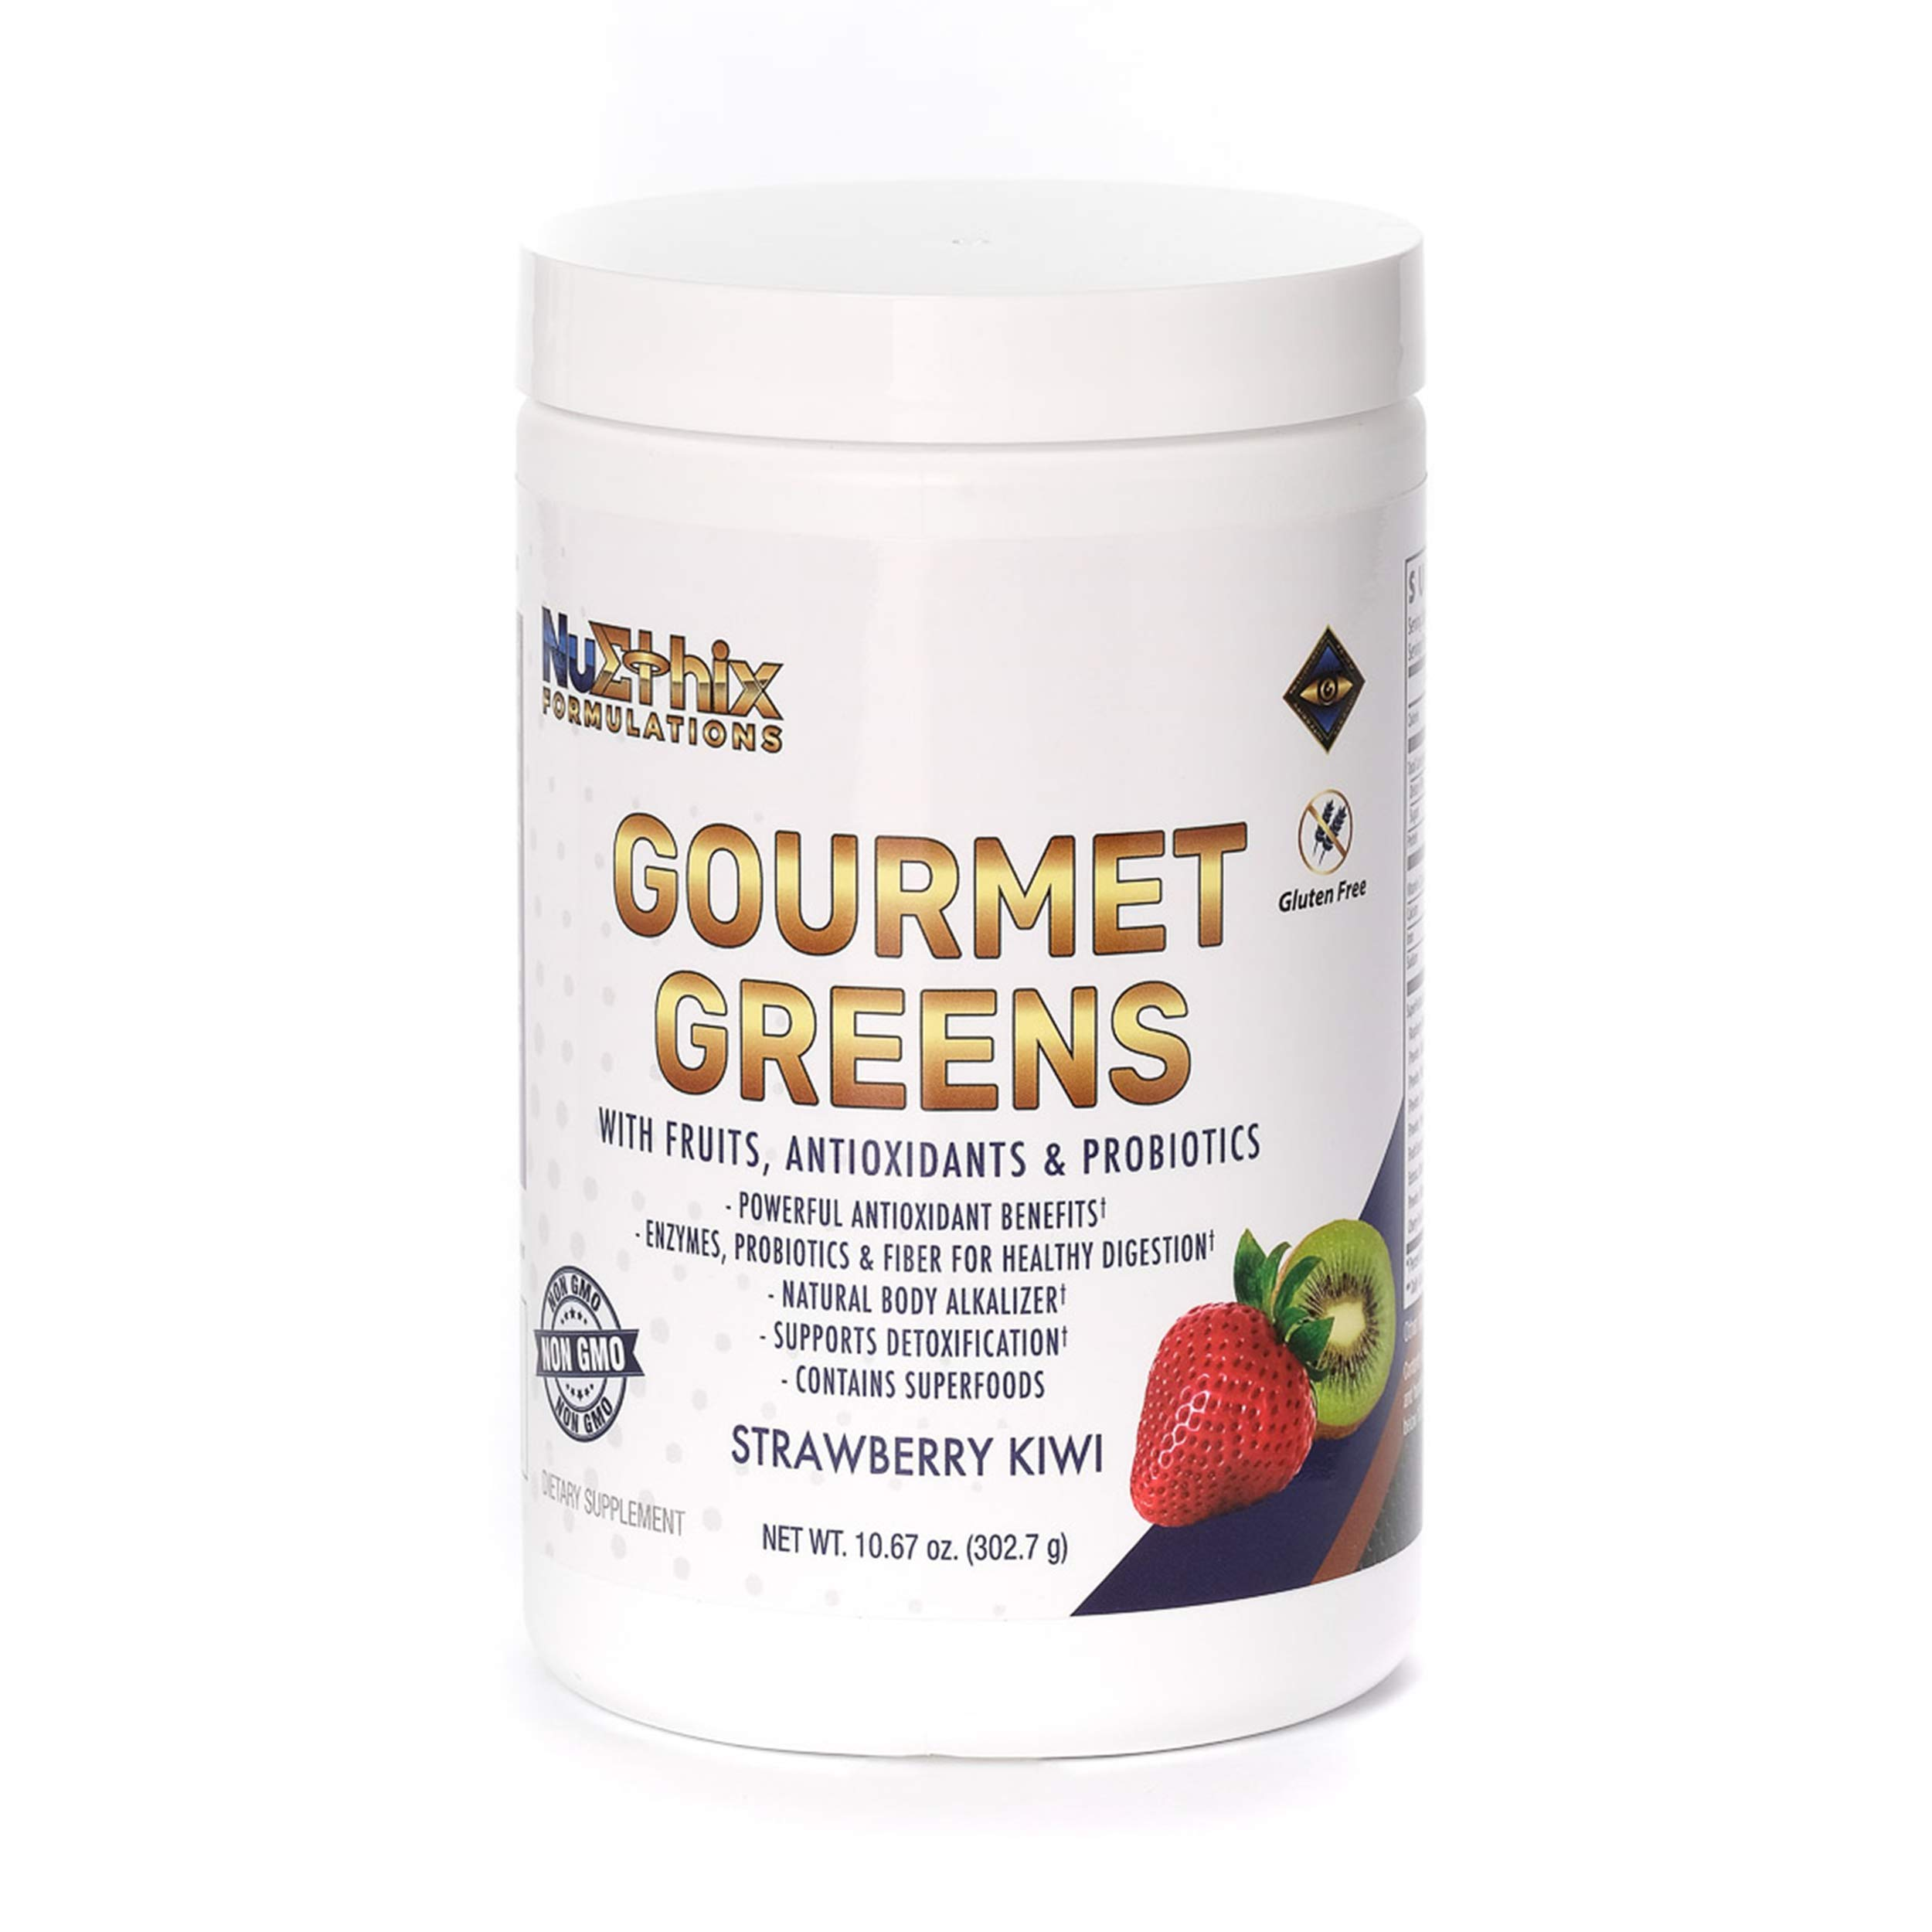 NuEthix Formulations Gourmet Greens Antioxidant Drink Powder with Fruit and Vegetable Superfoods, Strawberry Kiwi, 30 Servings